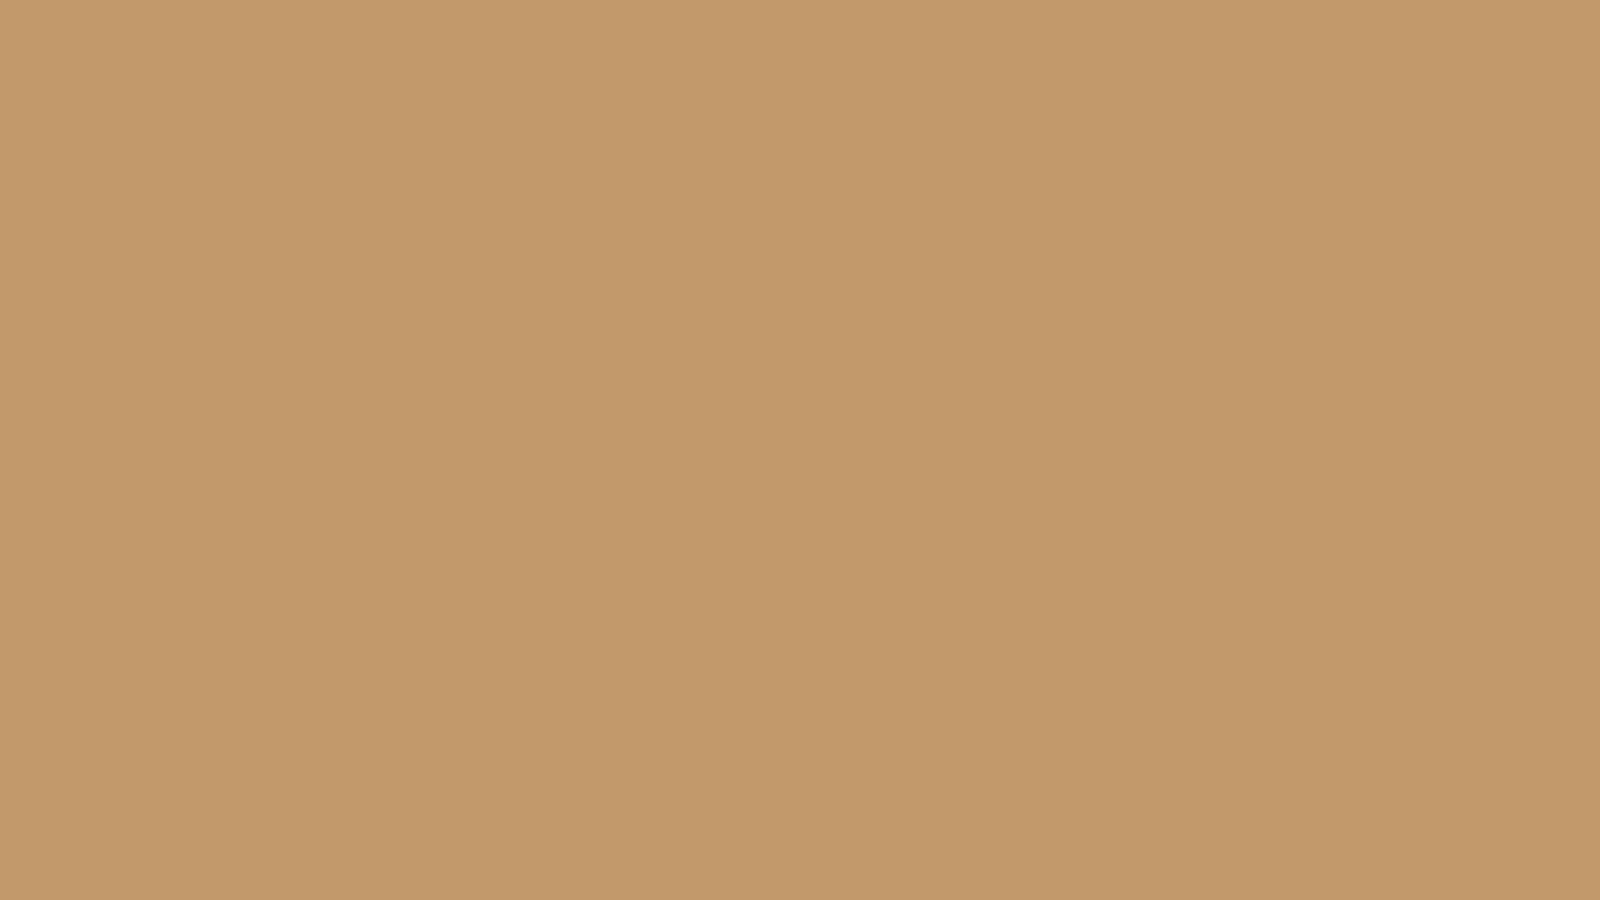 1600x900 Wood Brown Solid Color Background